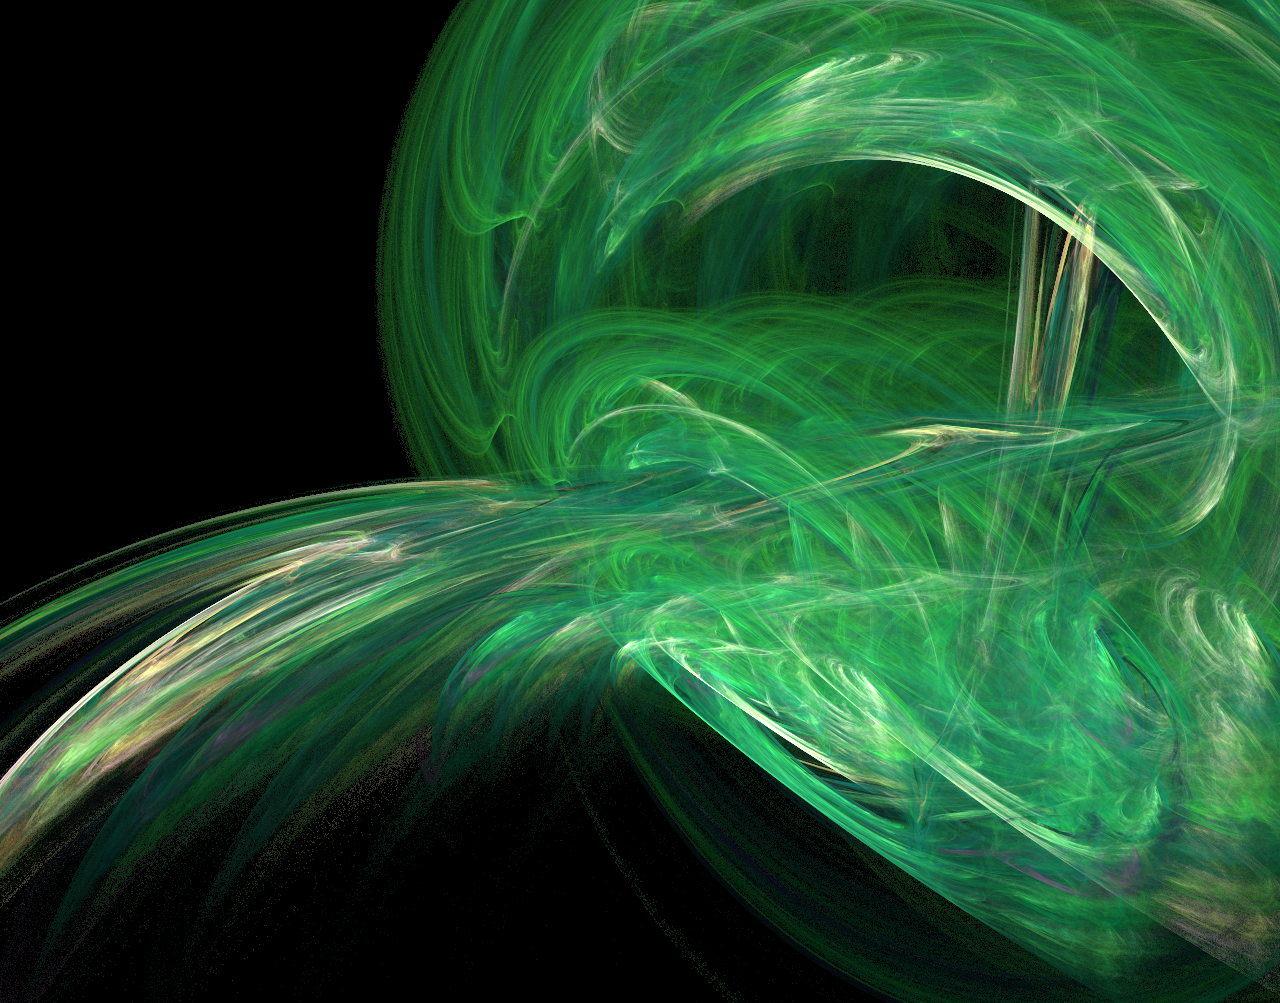 Green Flames Wallpaper Green flames by almightypickle 1280x1003